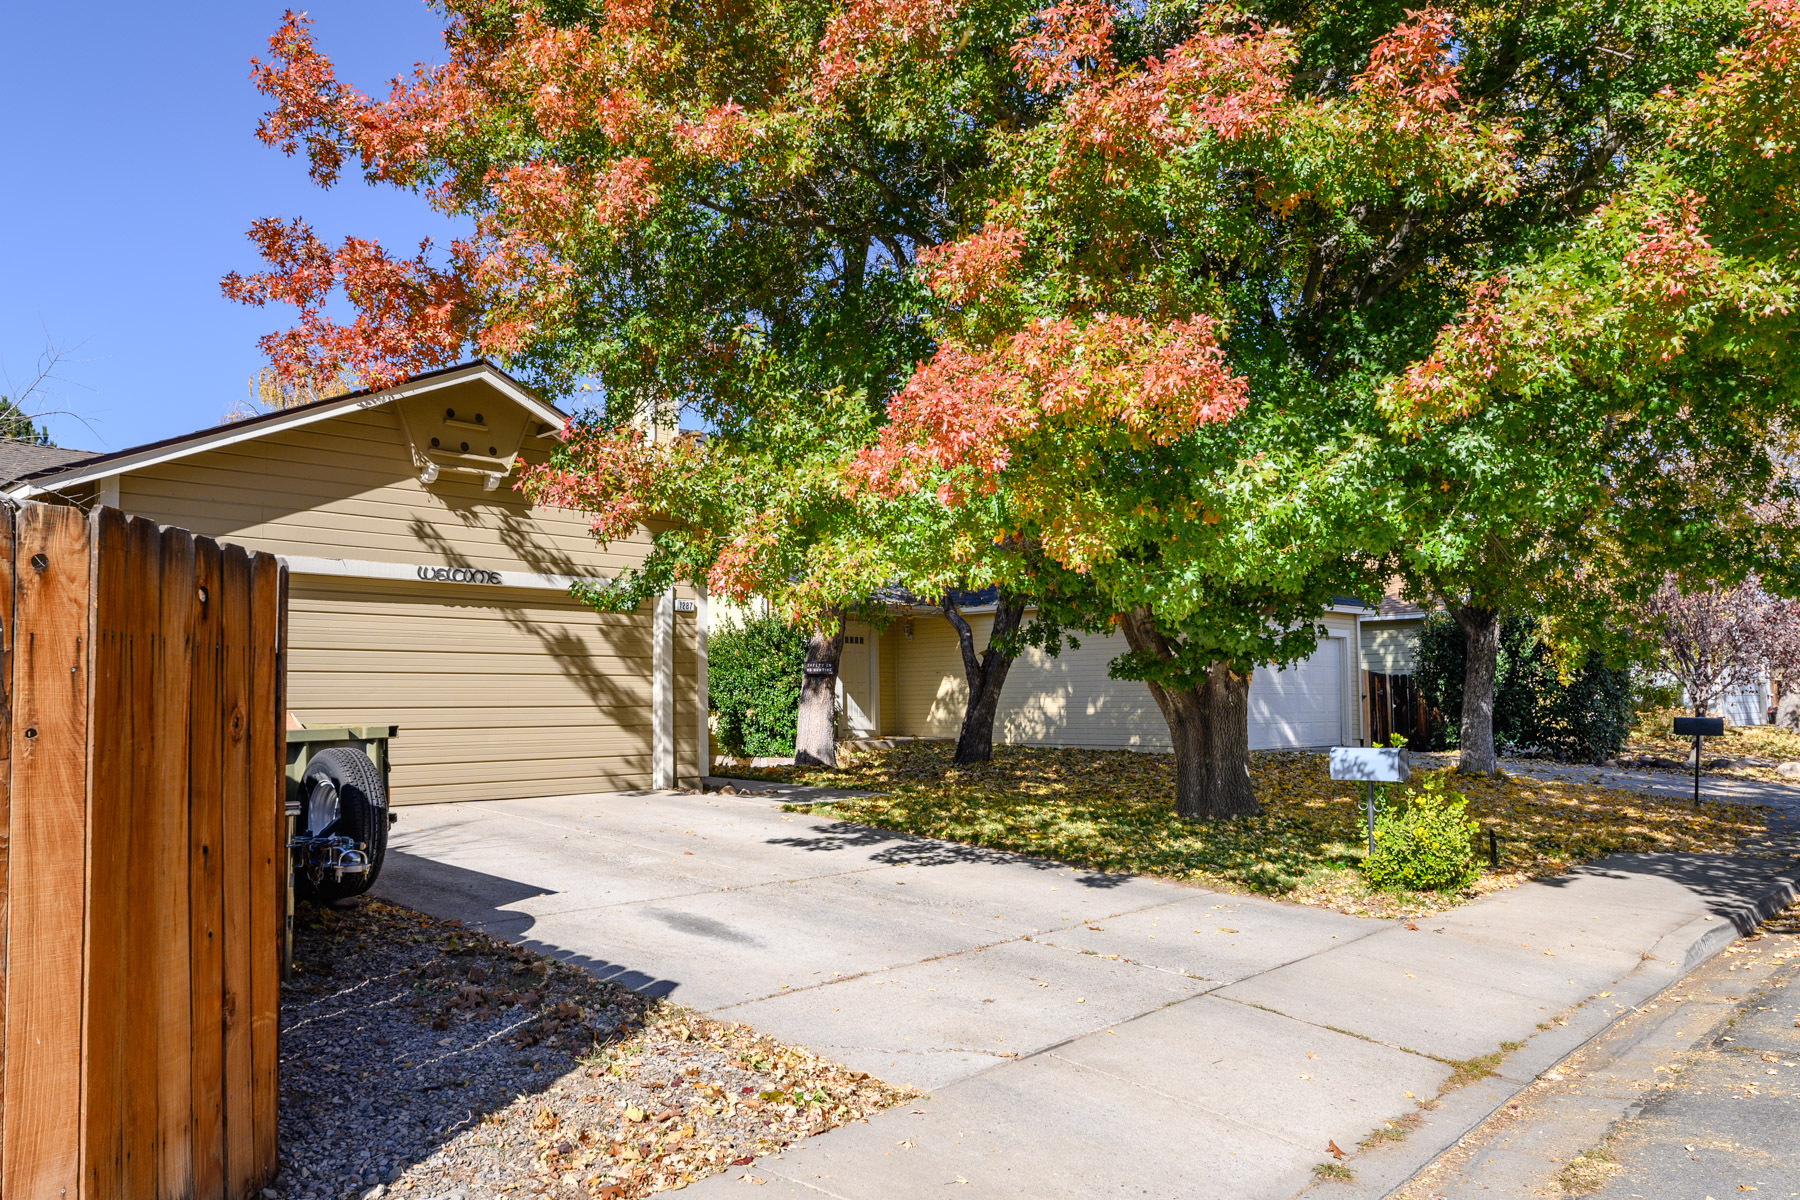 Additional photo for property listing at 1287 Express Street, Sparks, Nevada 1287 Express Street Sparks, Nevada 89434 United States